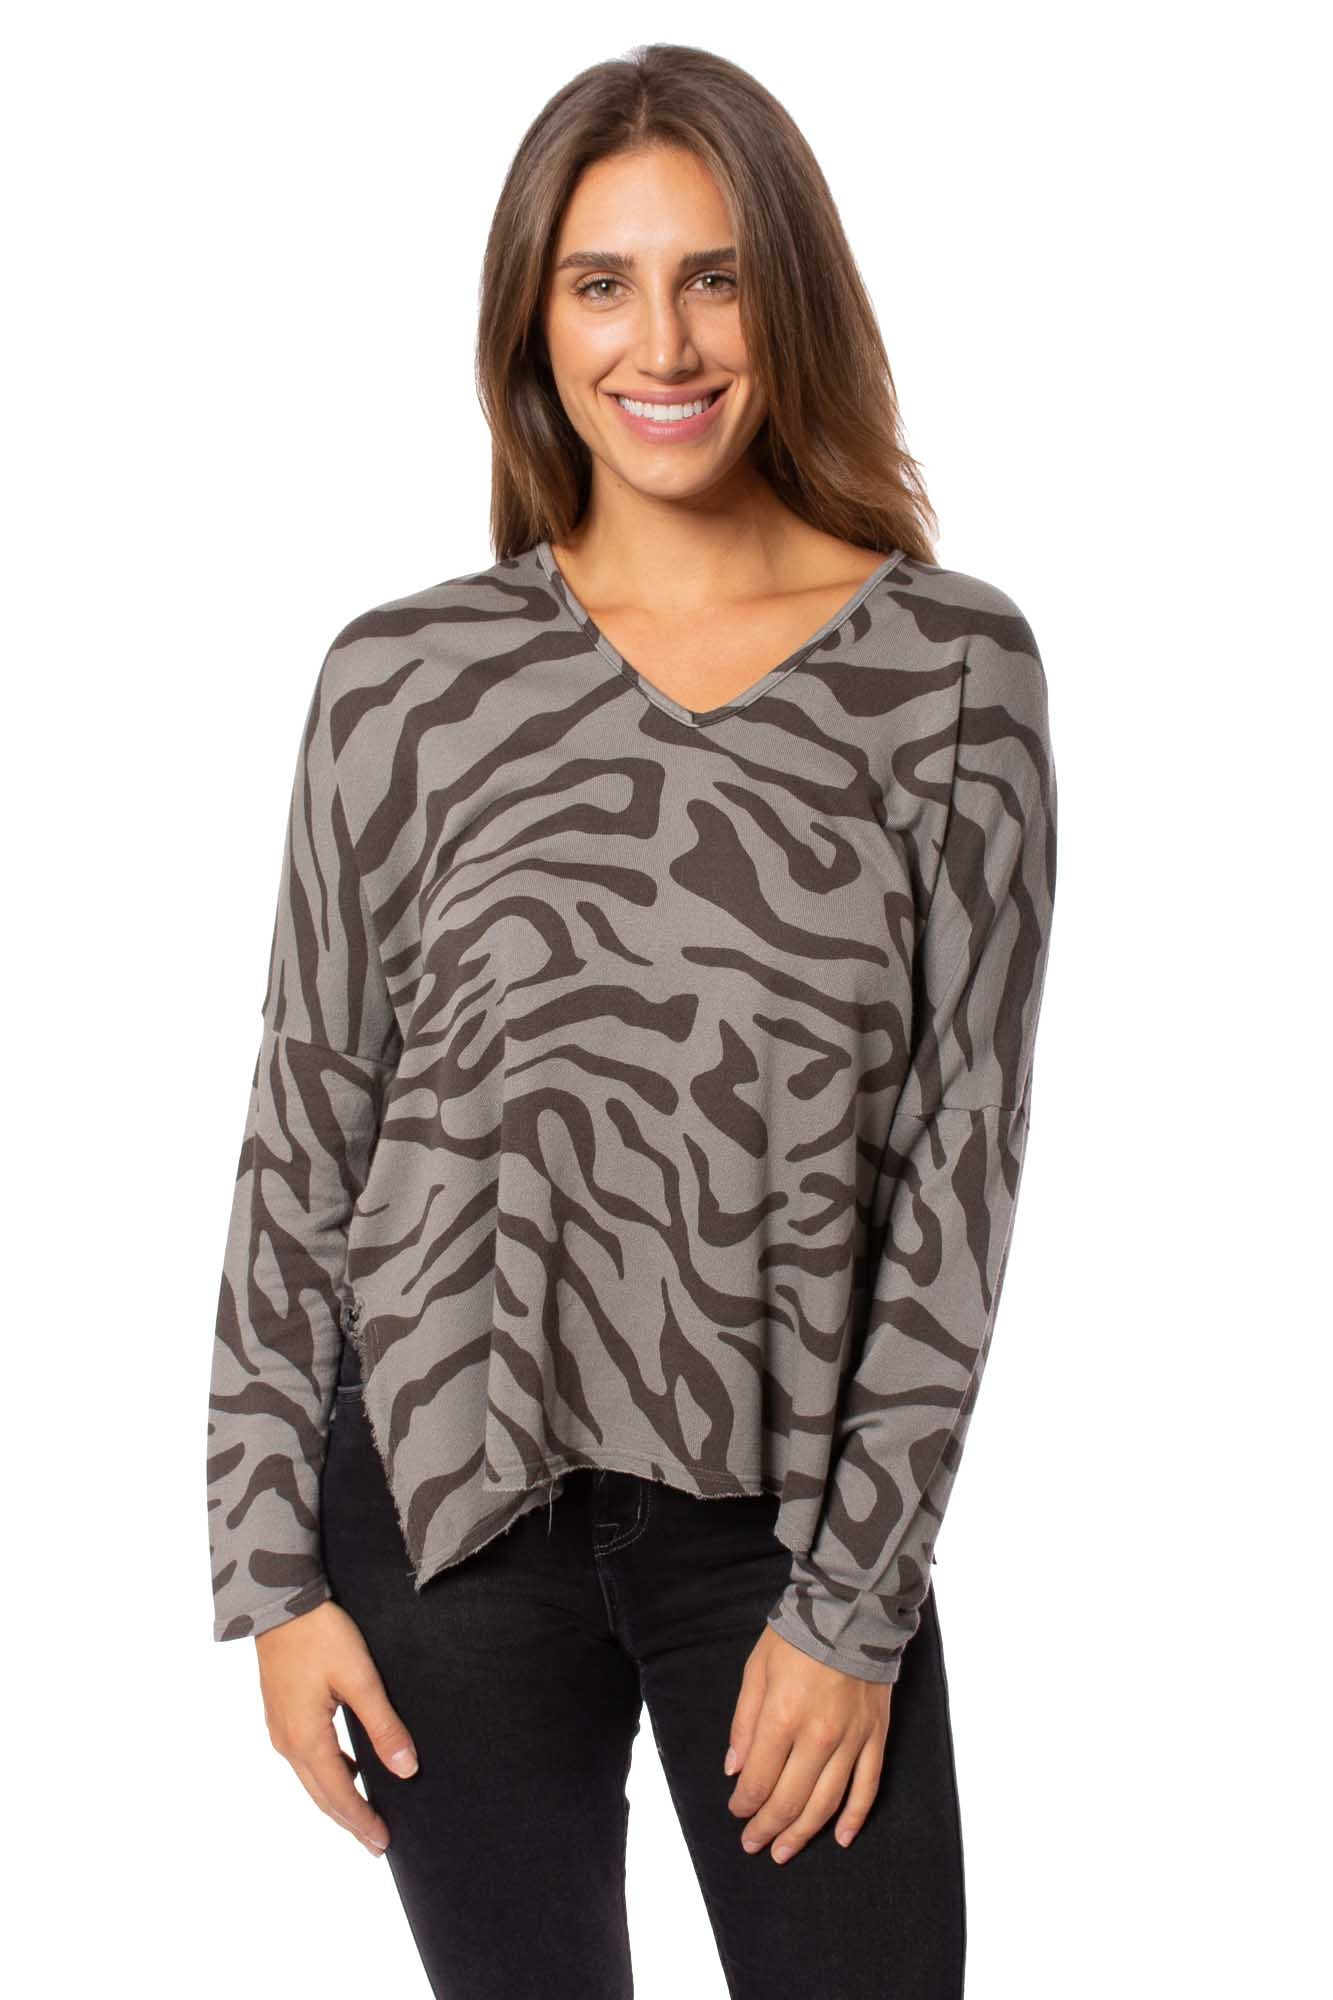 XCVI - Warrick V Neck Long Sleeve (13869, Brown & Gray Animal Print) alt view 2